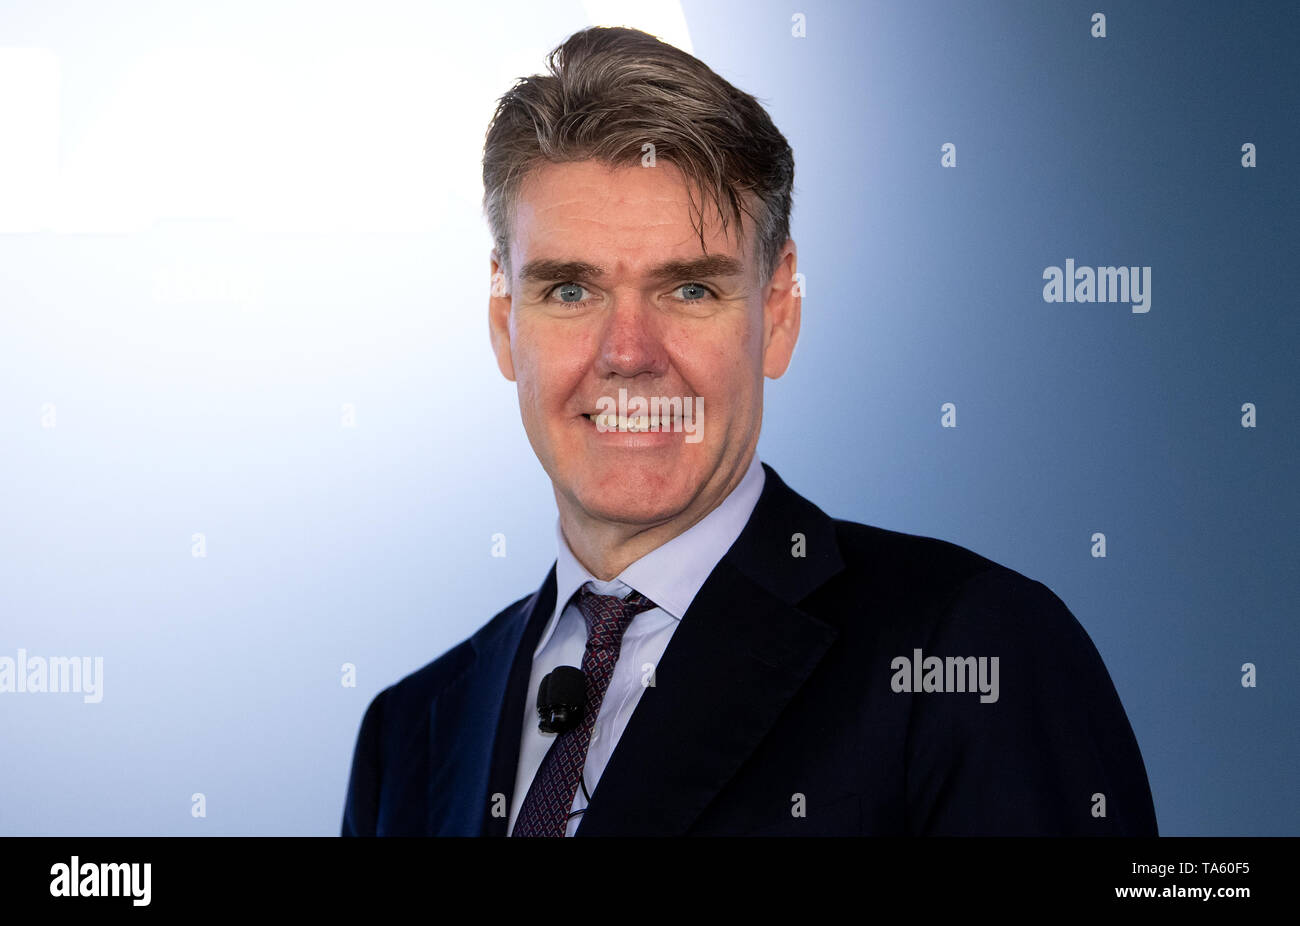 Munich, Germany. 22nd May, 2019. Joachim Drees, CEO of MAN SE, will be on the podium before the start of the Annual General Meeting. The bus and truck manufacturer now owns 95 percent of the VW subsidiary Traton SE, which plans to go public shortly. Credit: Sven Hoppe/dpa/Alamy Live News - Stock Image